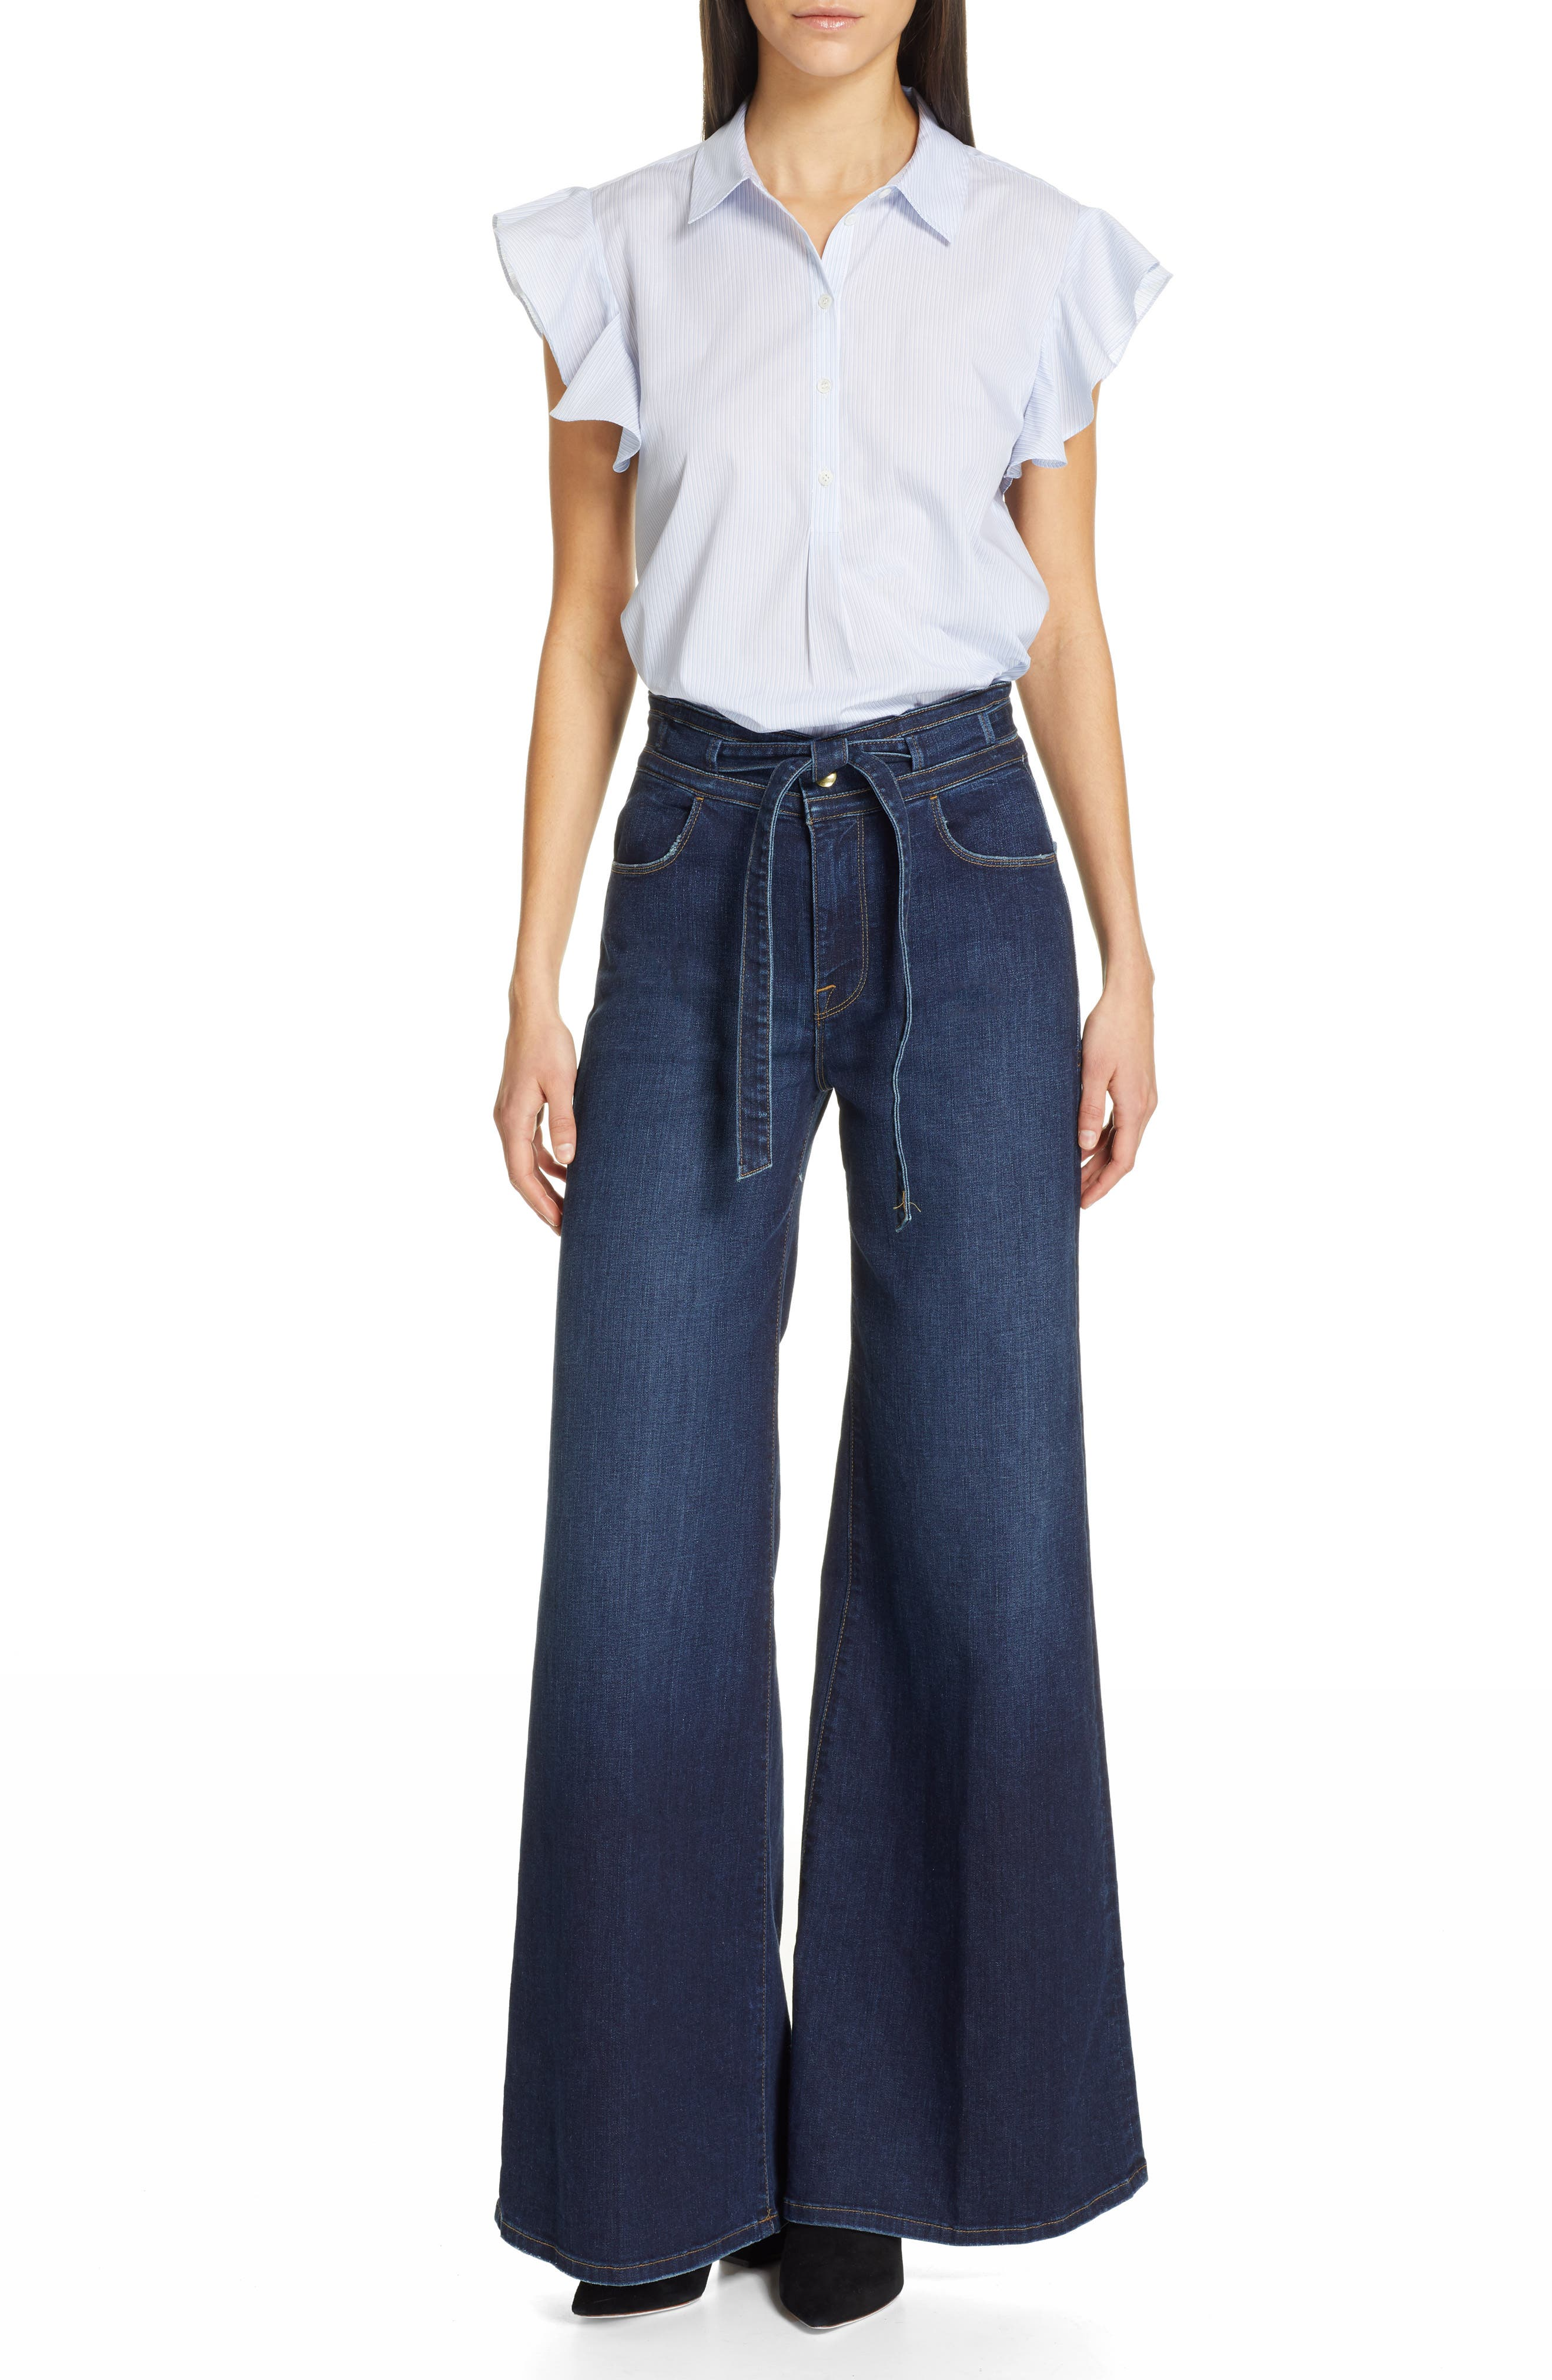 FRAME, Belted Palazzo Jeans, Alternate thumbnail 8, color, MERIBO